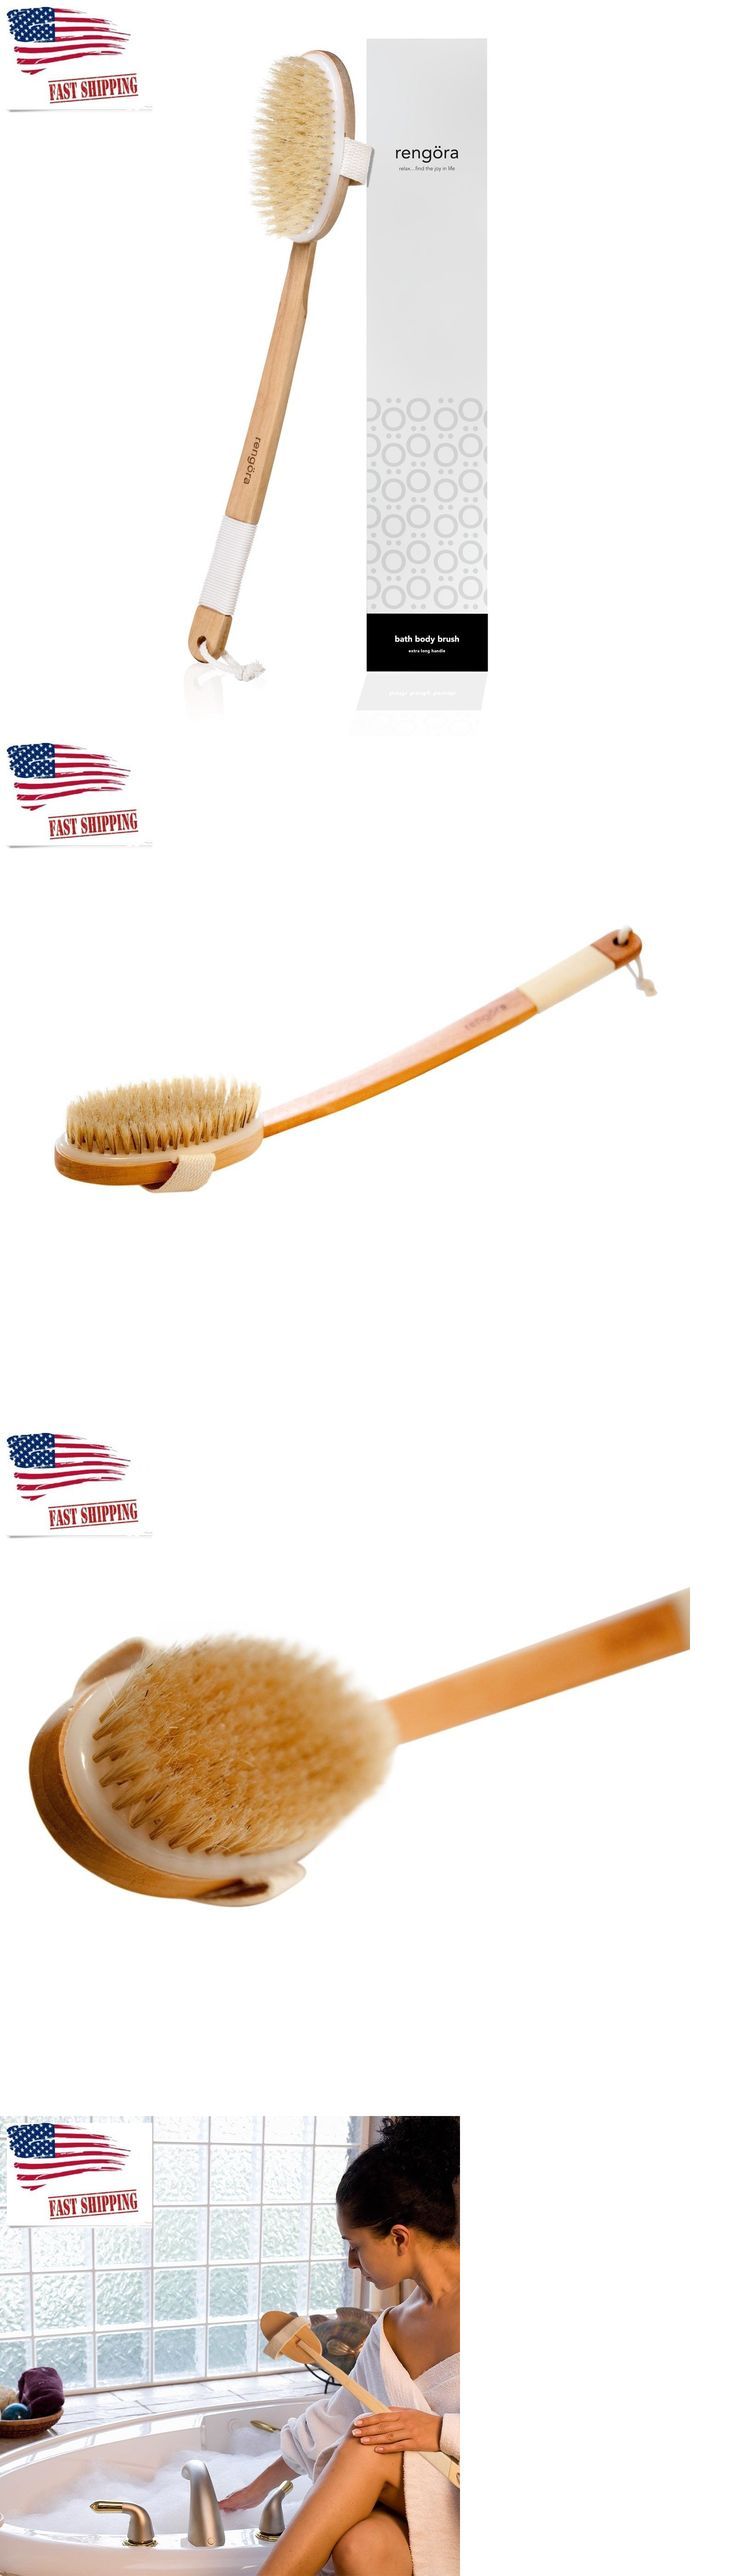 Bath Brushes and Sponges: Bath Brush Extra Long Handle 18 W Natural Bristles Curved Wooden Shower Brush -> BUY IT NOW ONLY: $30.02 on eBay!